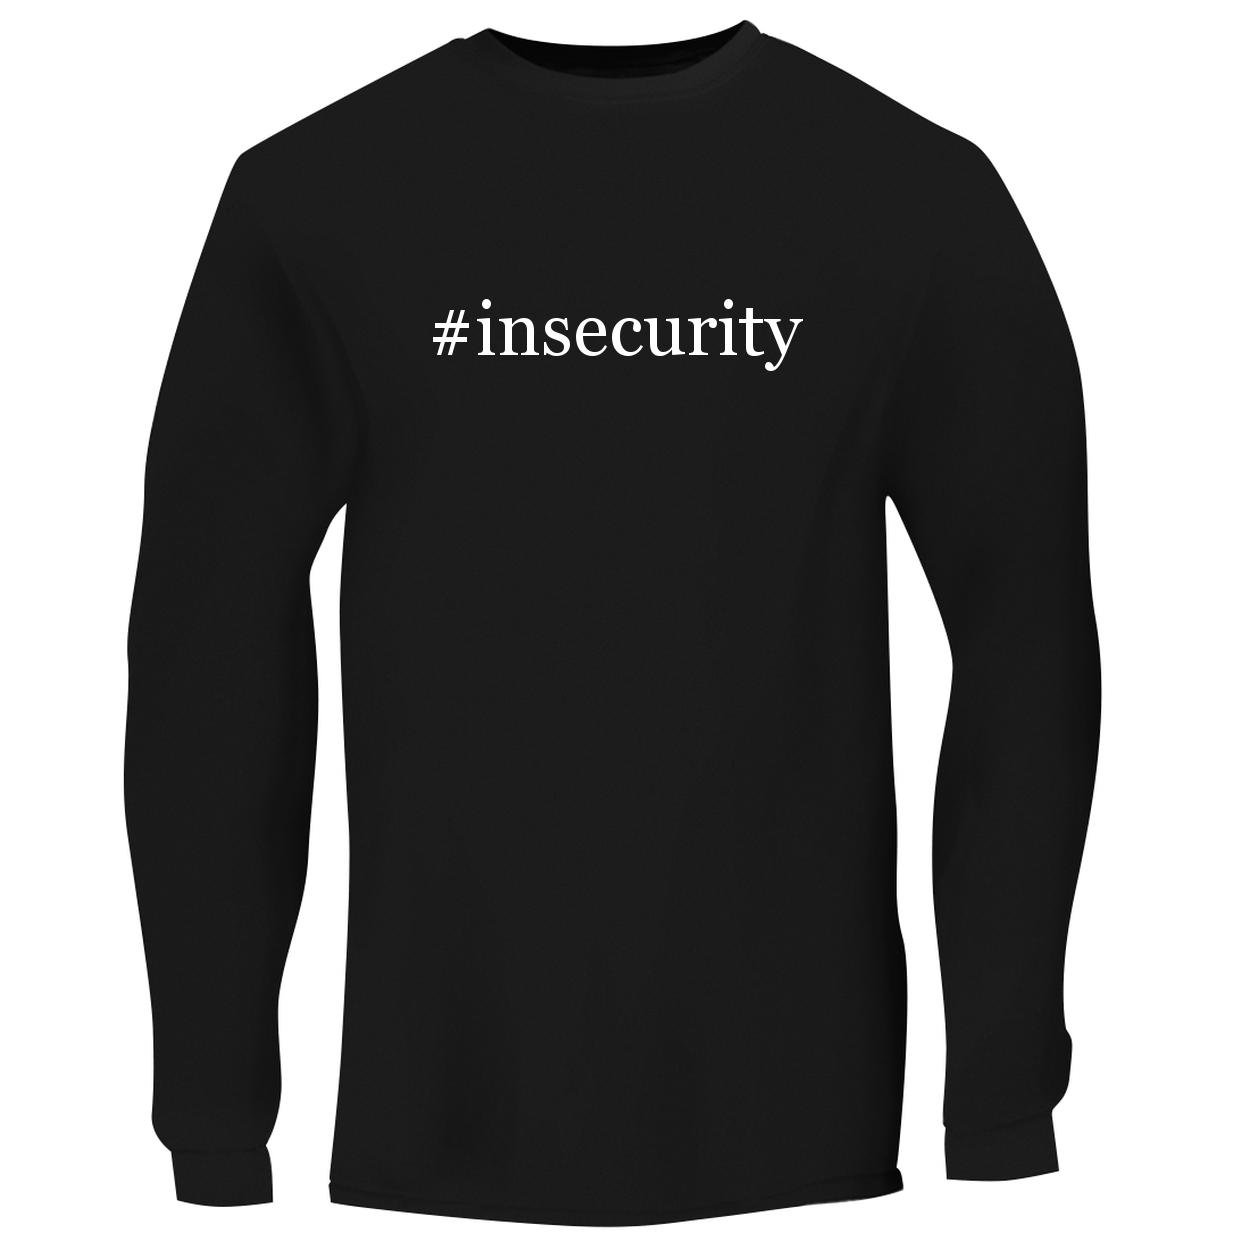 e7eb96bff Amazon.com: BH Cool Designs #Insecurity - Men's Long Sleeve Graphic Tee:  Clothing